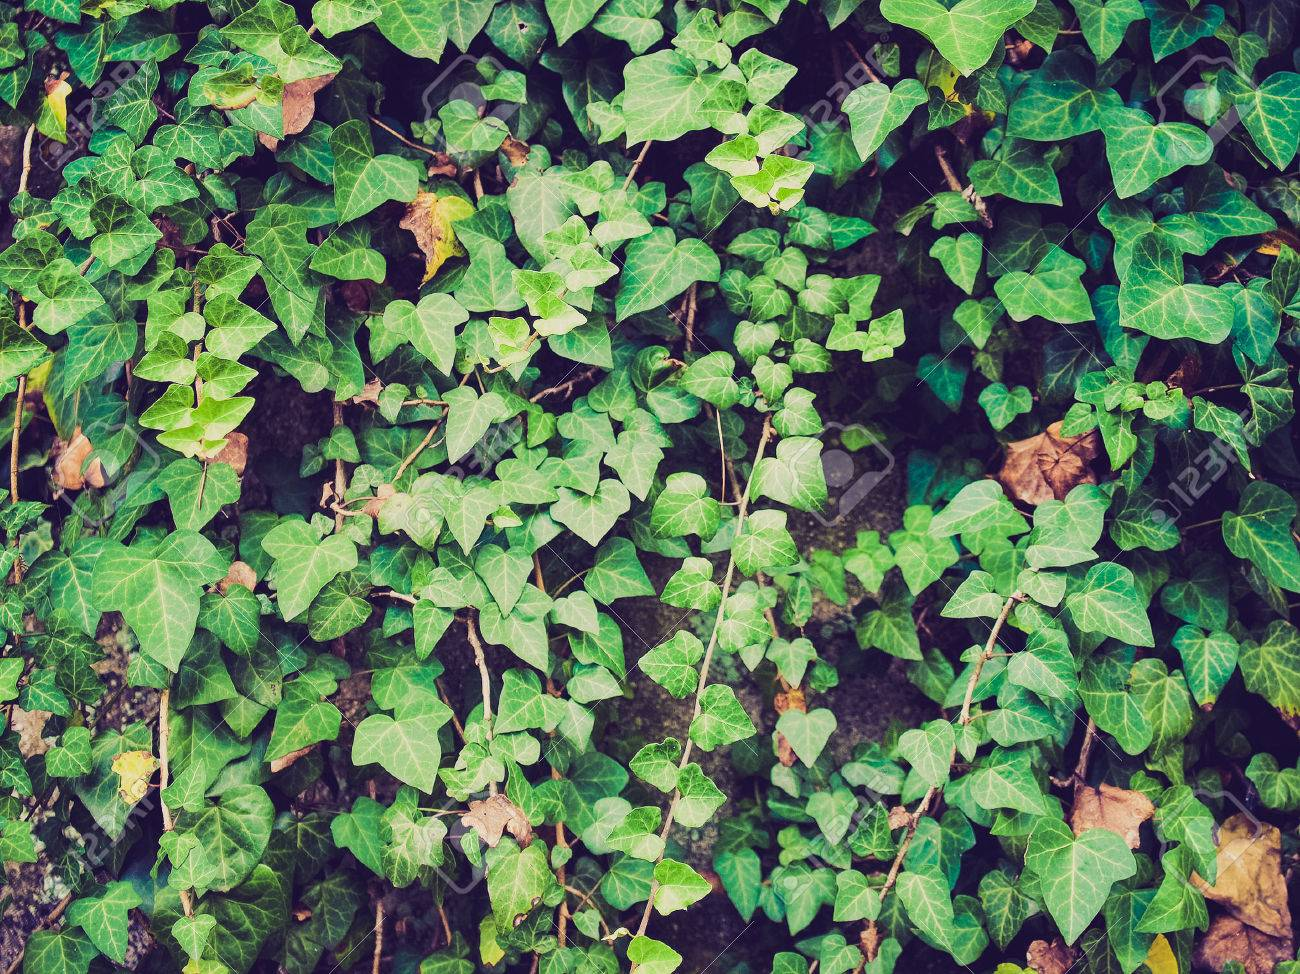 Vintage Looking Green Ivy Plants Useful As A Background Stock Photo Picture And Royalty Free Image Image 27204622